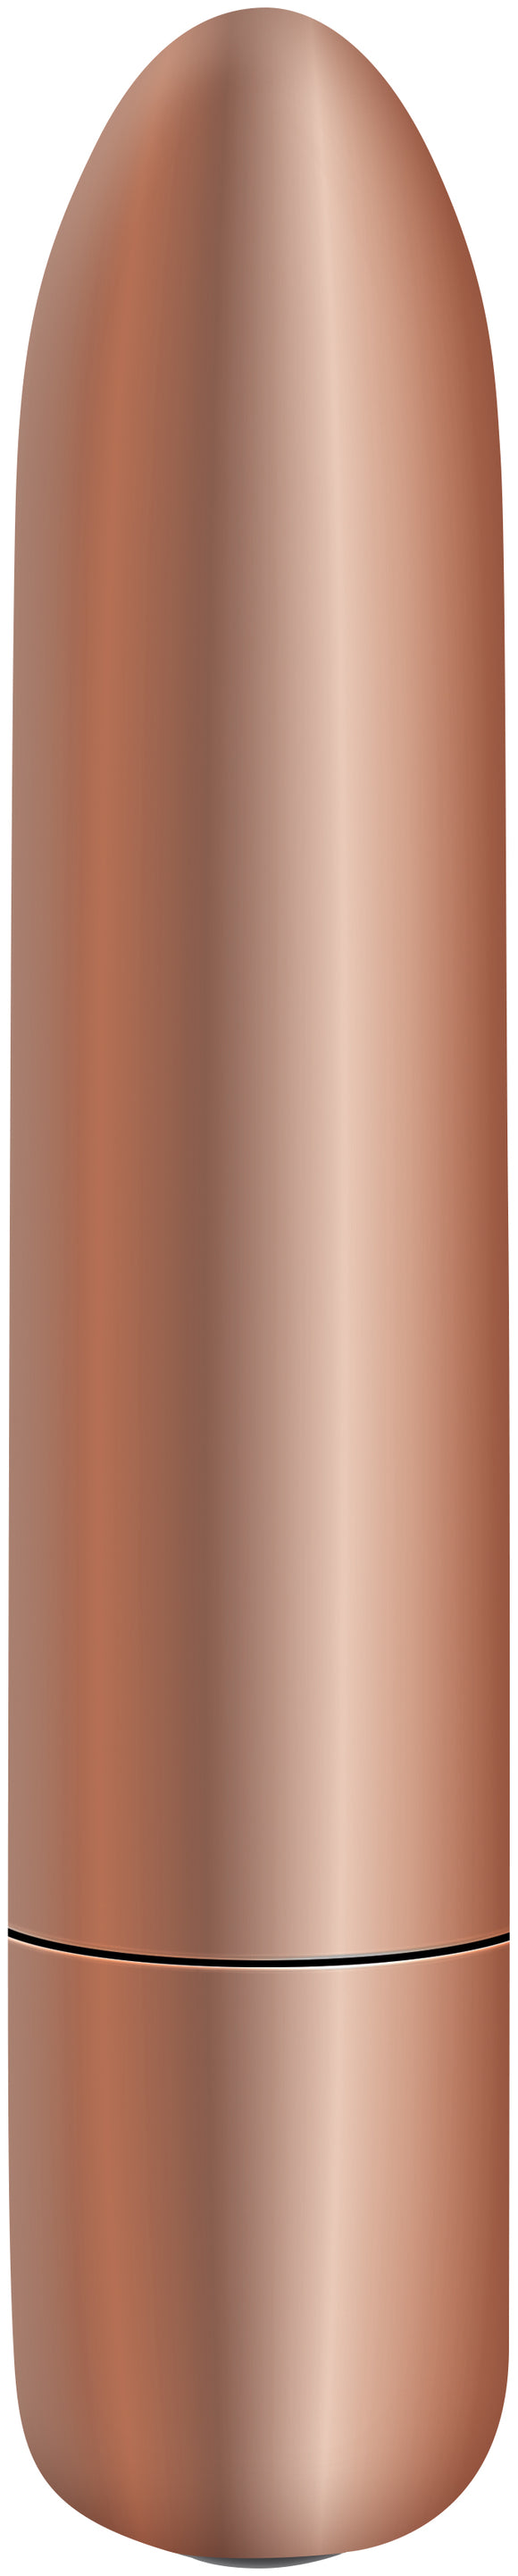 Eve's Copper Cutie Rechargeable Bullet AE-WF-7136-2